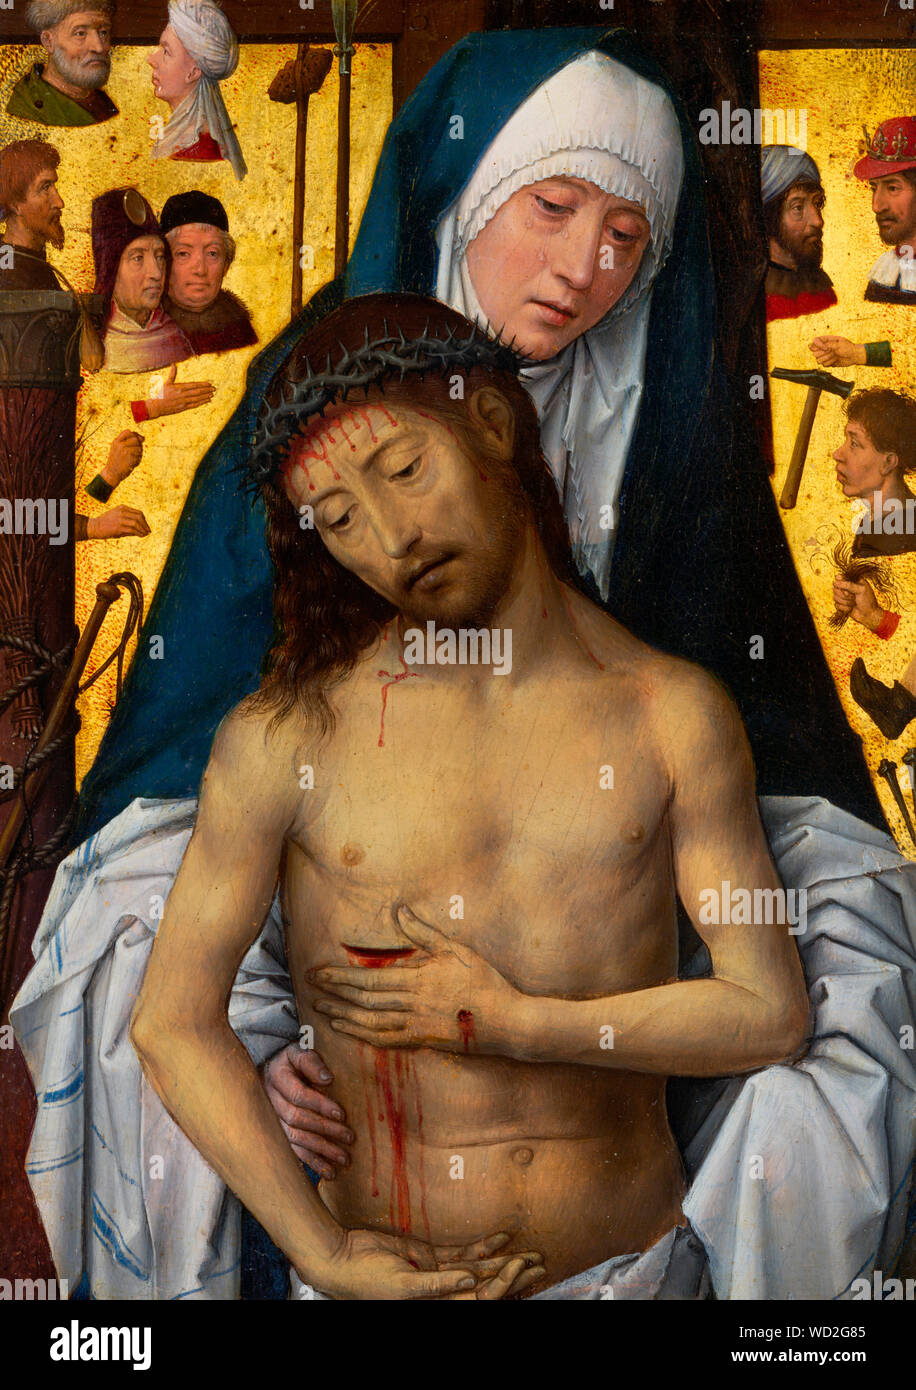 The Man of Sorrows in the arms of the Virgin - Hans Memling, circa 1475 Stock Photo